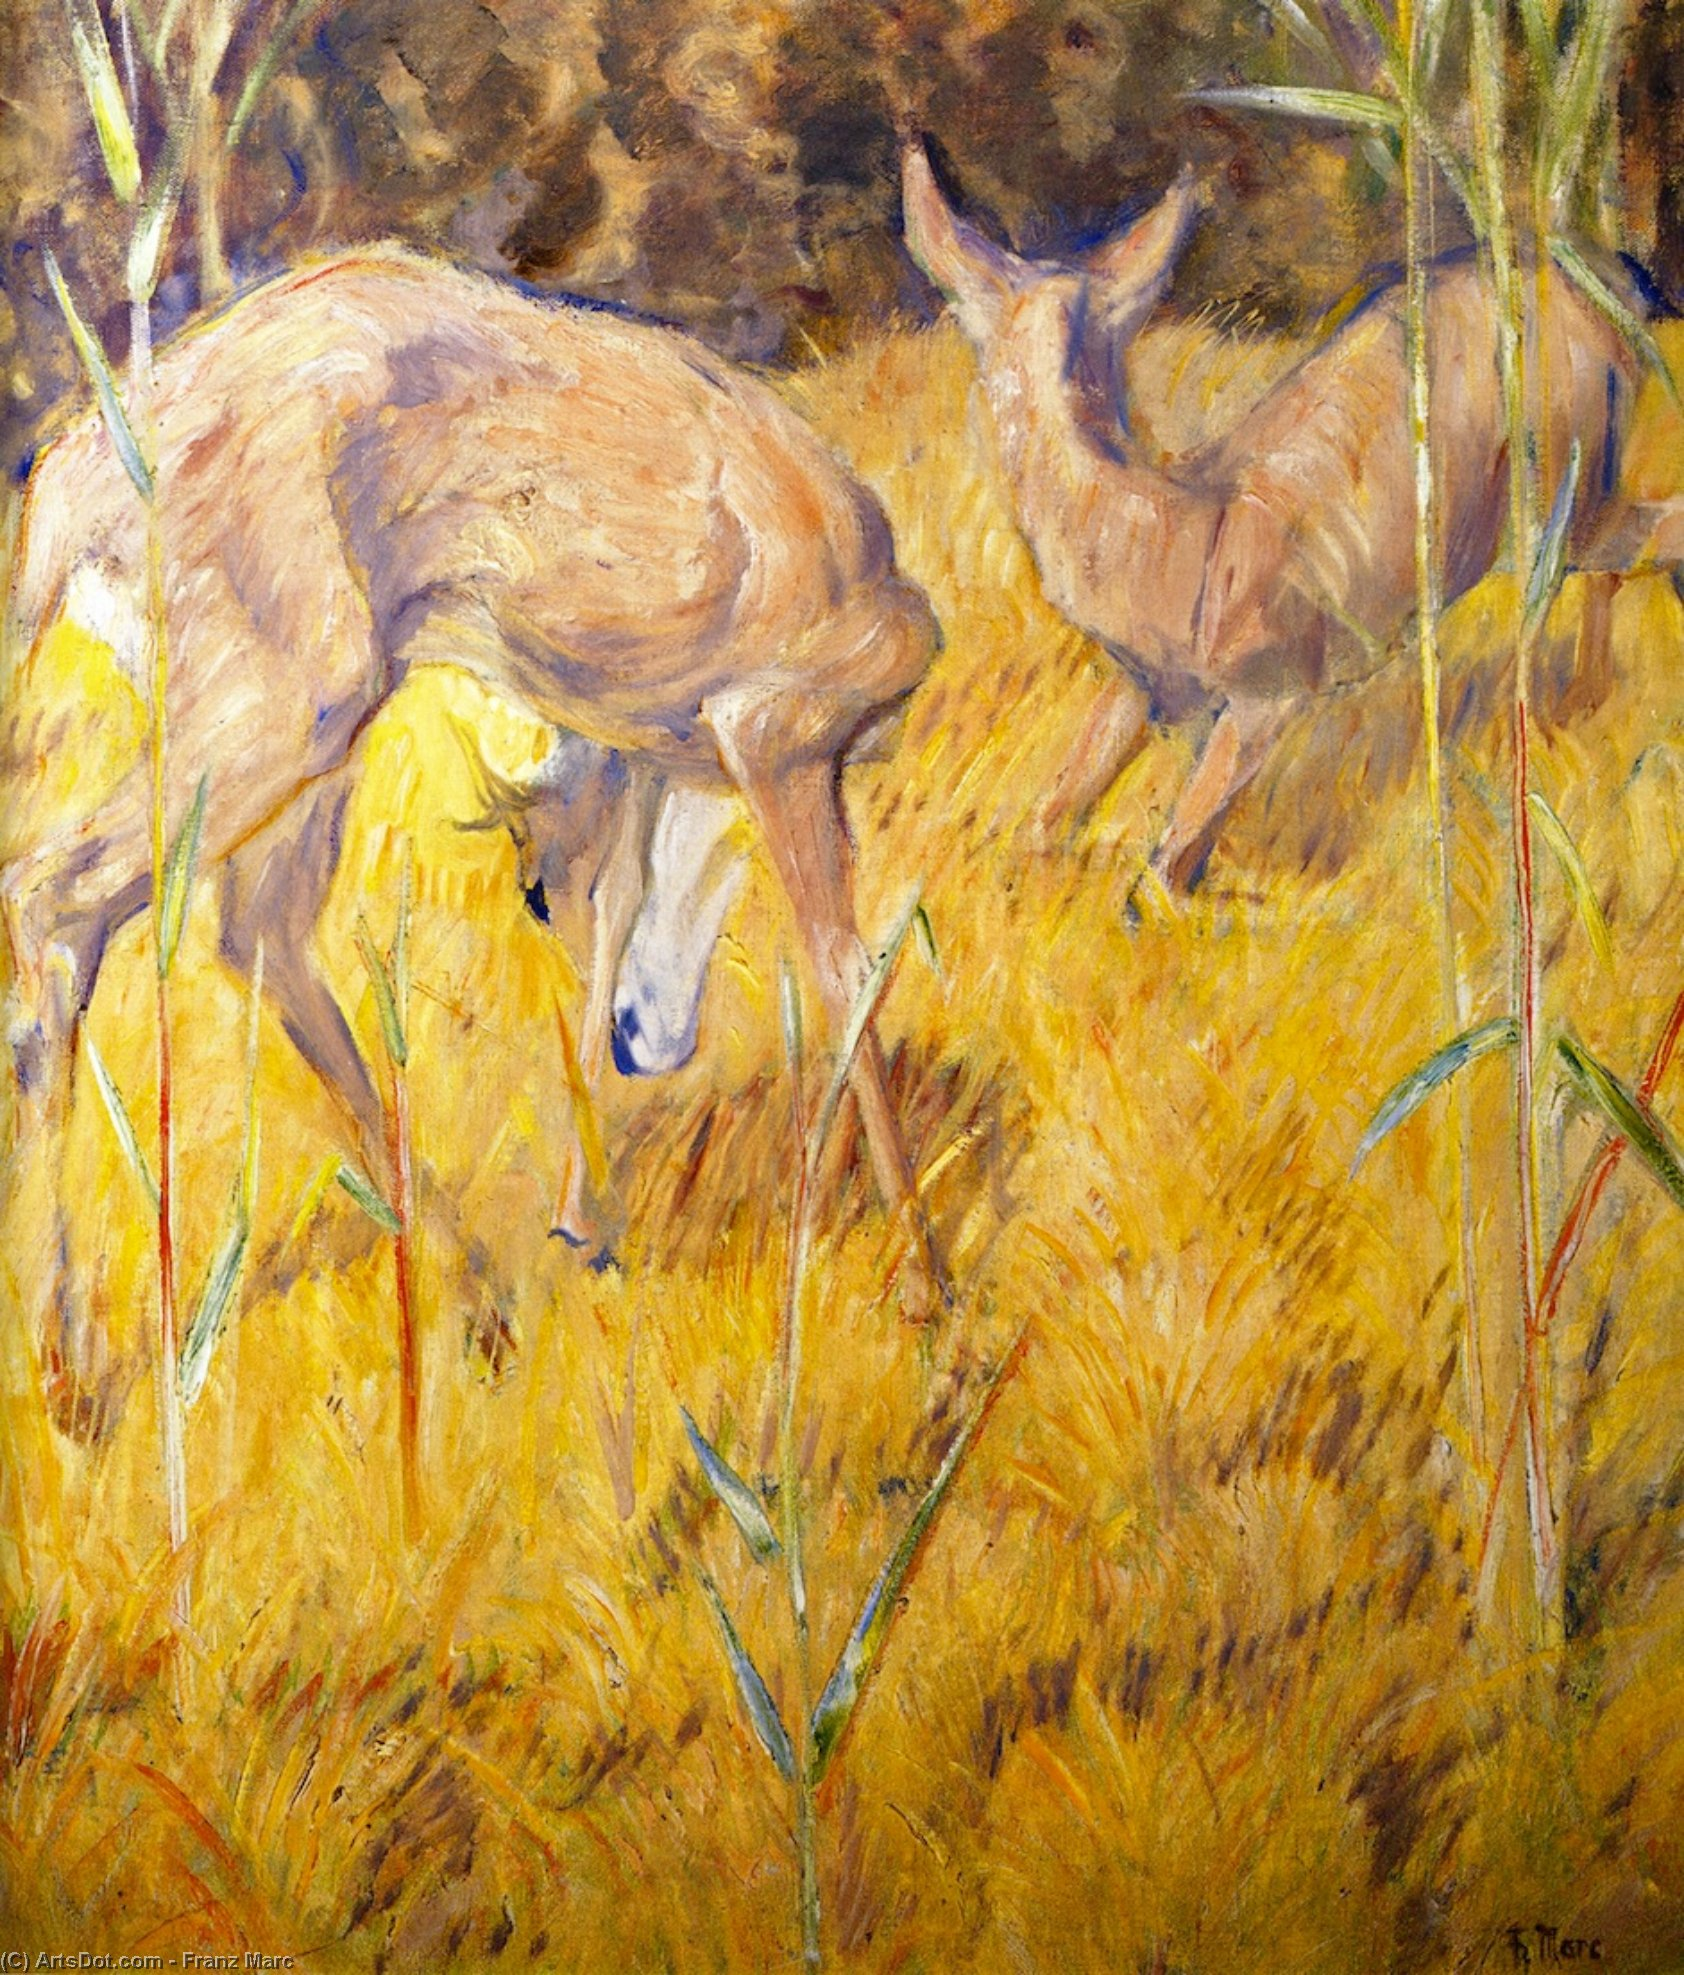 Wikioo.org - The Encyclopedia of Fine Arts - Painting, Artwork by Franz Marc - Deer in the Reeds